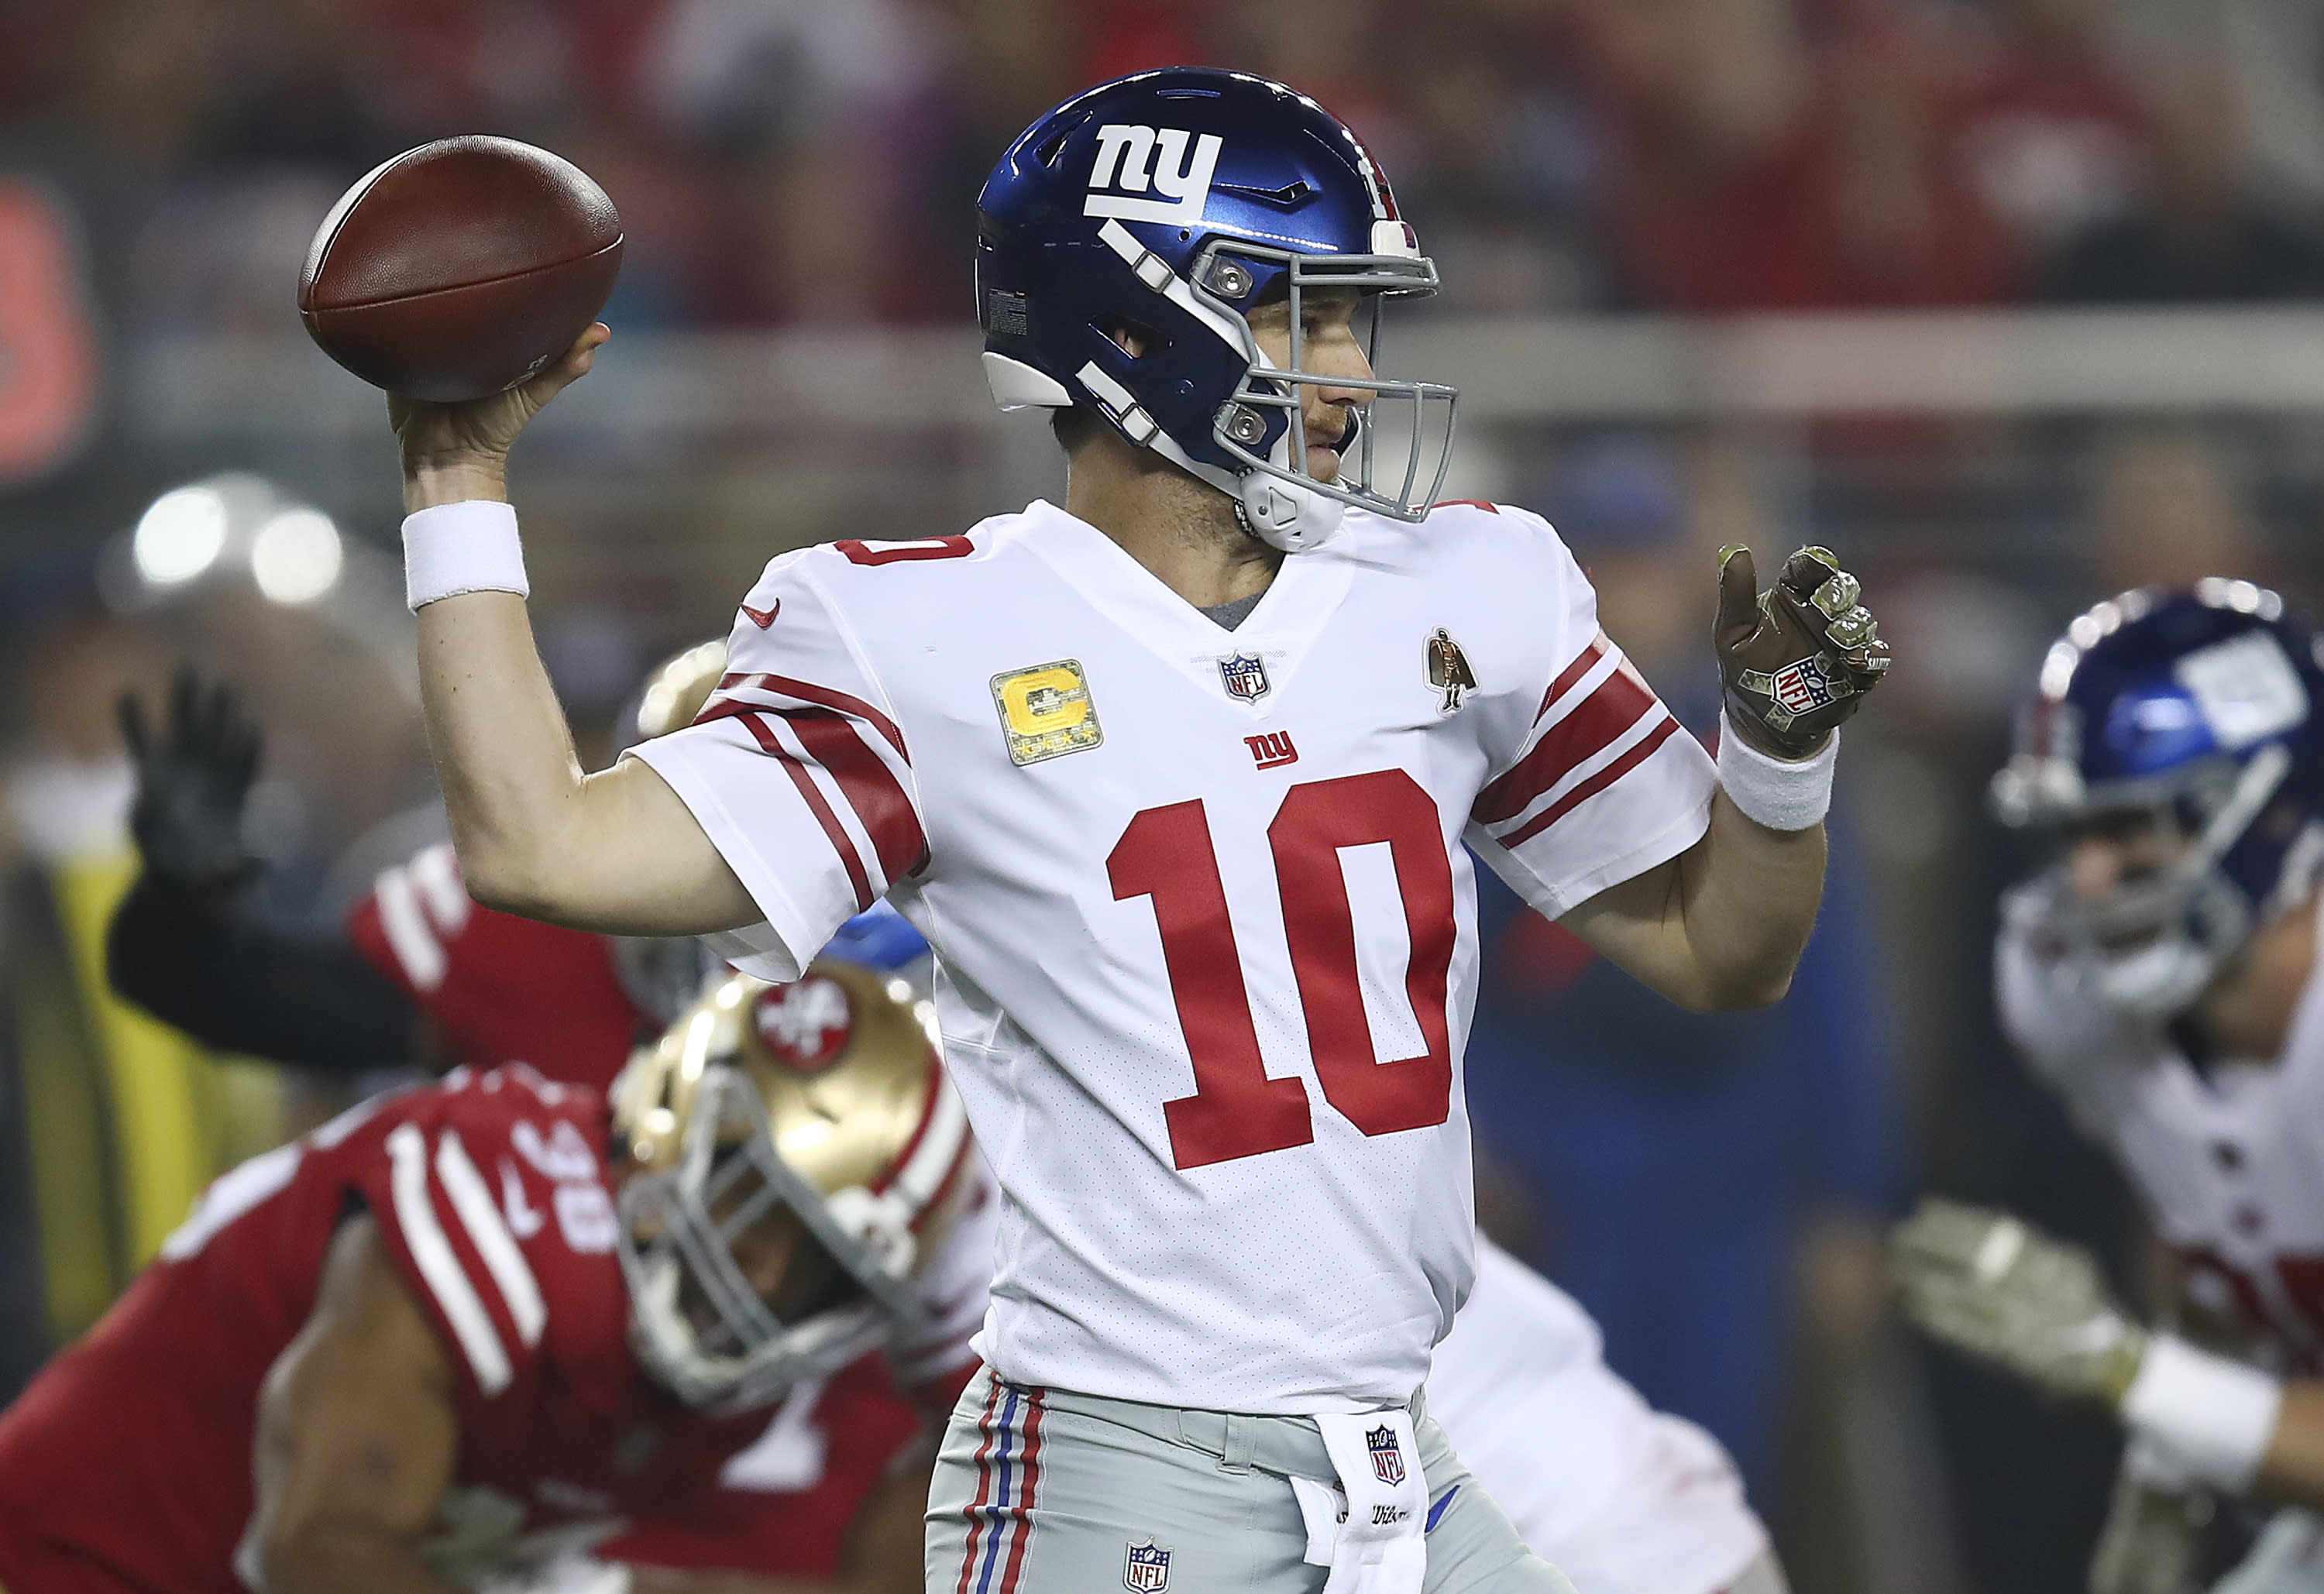 With his job possibly on the line, Eli Manning has some magic to lift Giants over 49ers